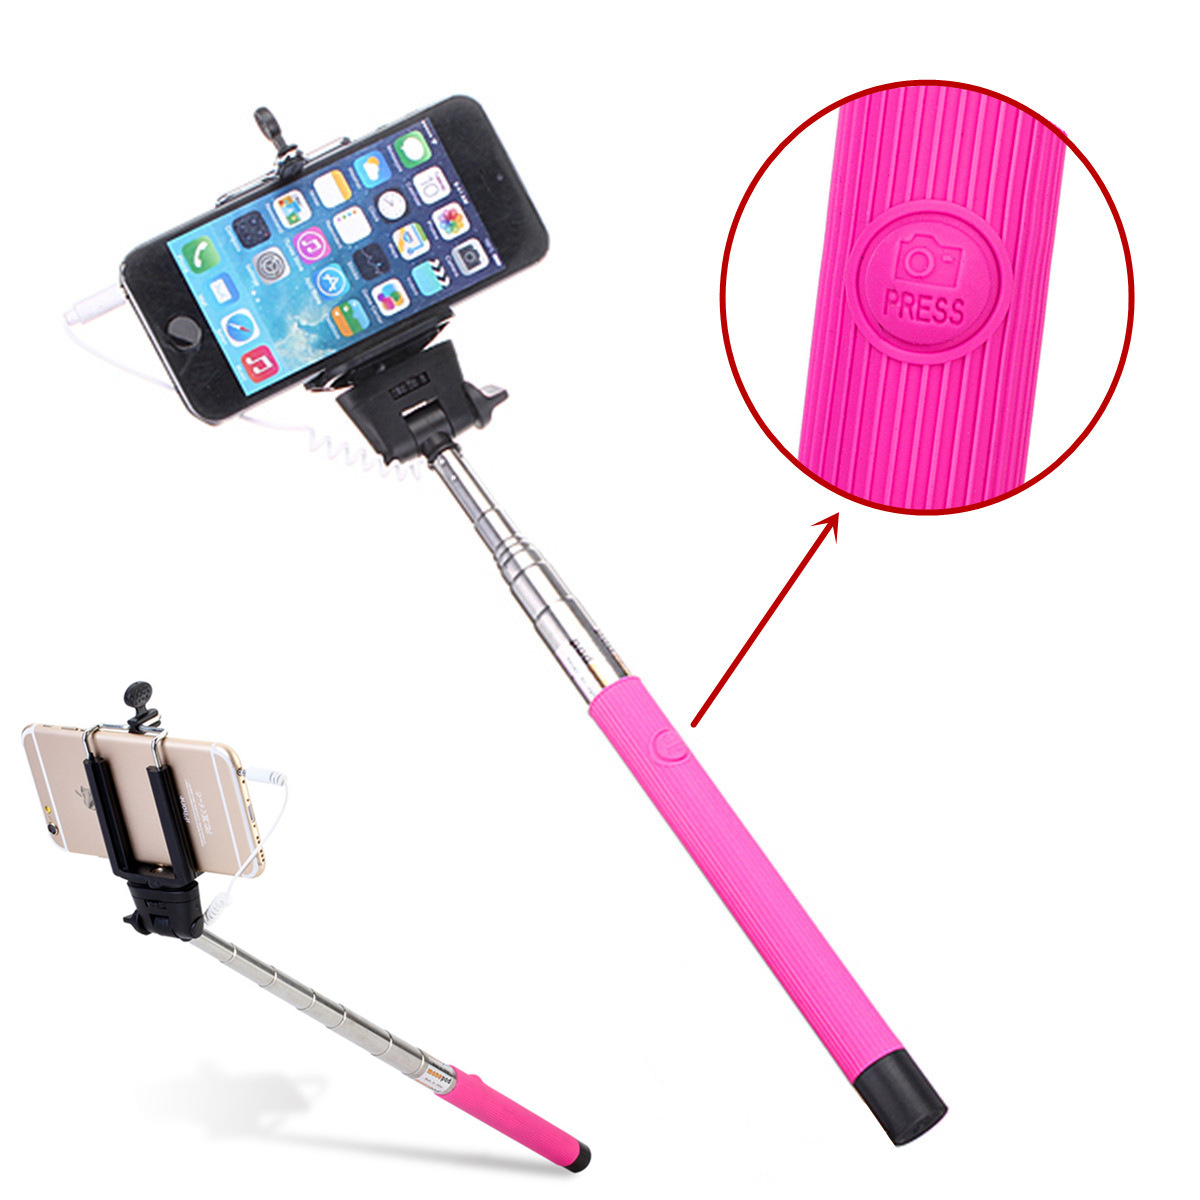 Remote Button Wired Cellphone Selfie Stick Extendable Handheld Monopod With 3.5mm Audio Cable for Cellphone